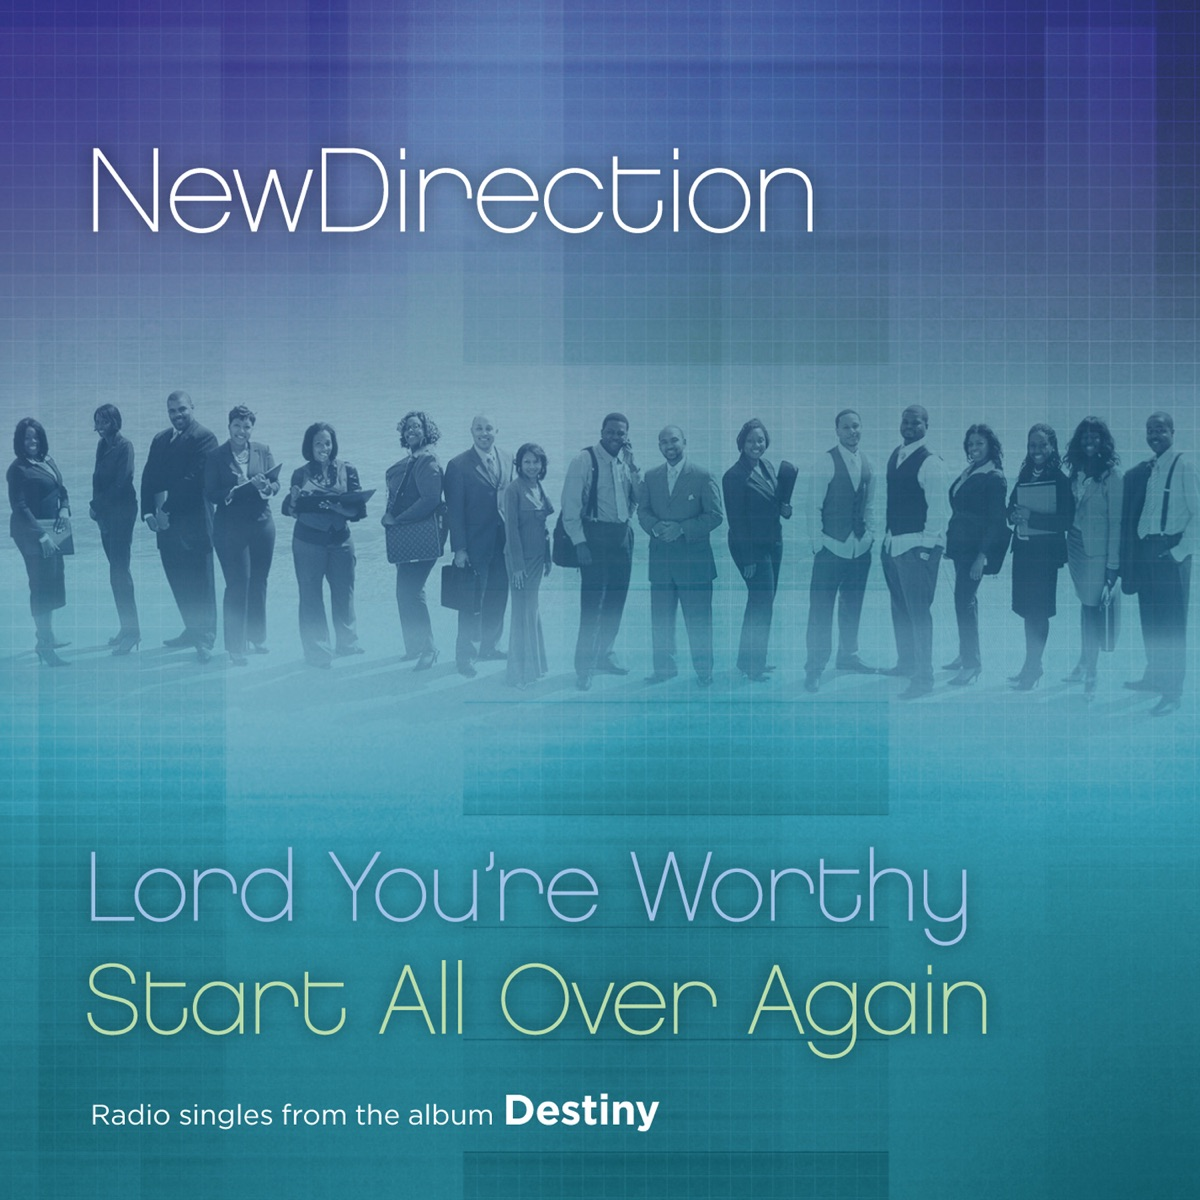 Lord You're Worthy / Start All Over Again Album Cover by ...One Direction Over Again Album Cover